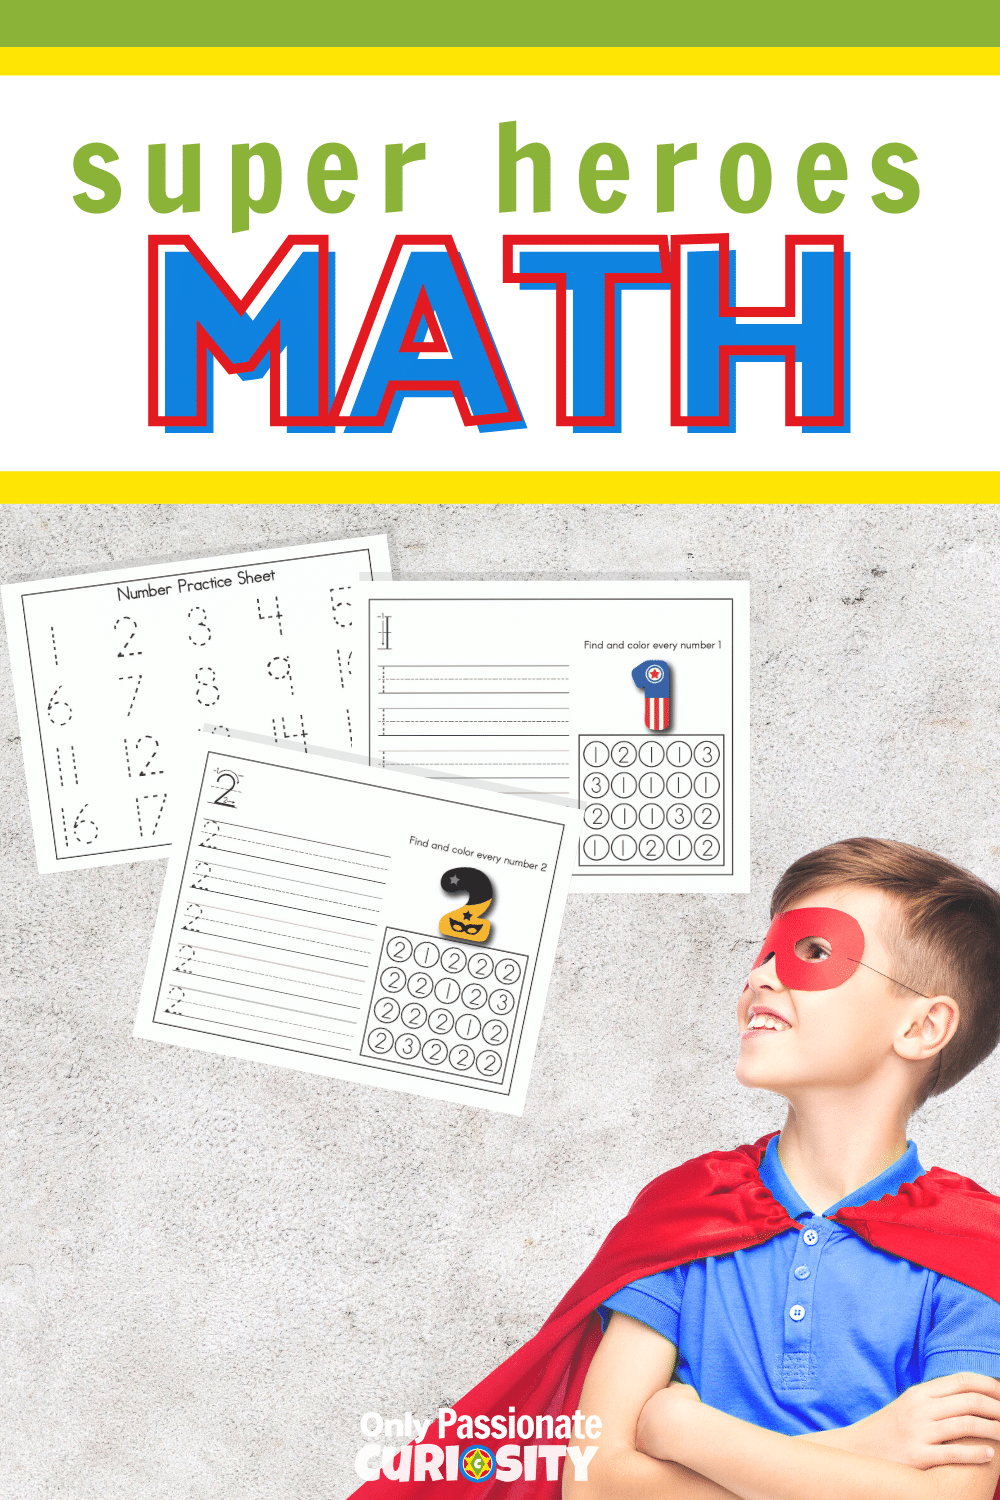 Use these 21 printable pages to help your little super heroes learn to identify and write the numbers 1-20! Laminate the pages to use them over and over. You'll also find additional ways to use these pages and to extend your number practice in fun ways.